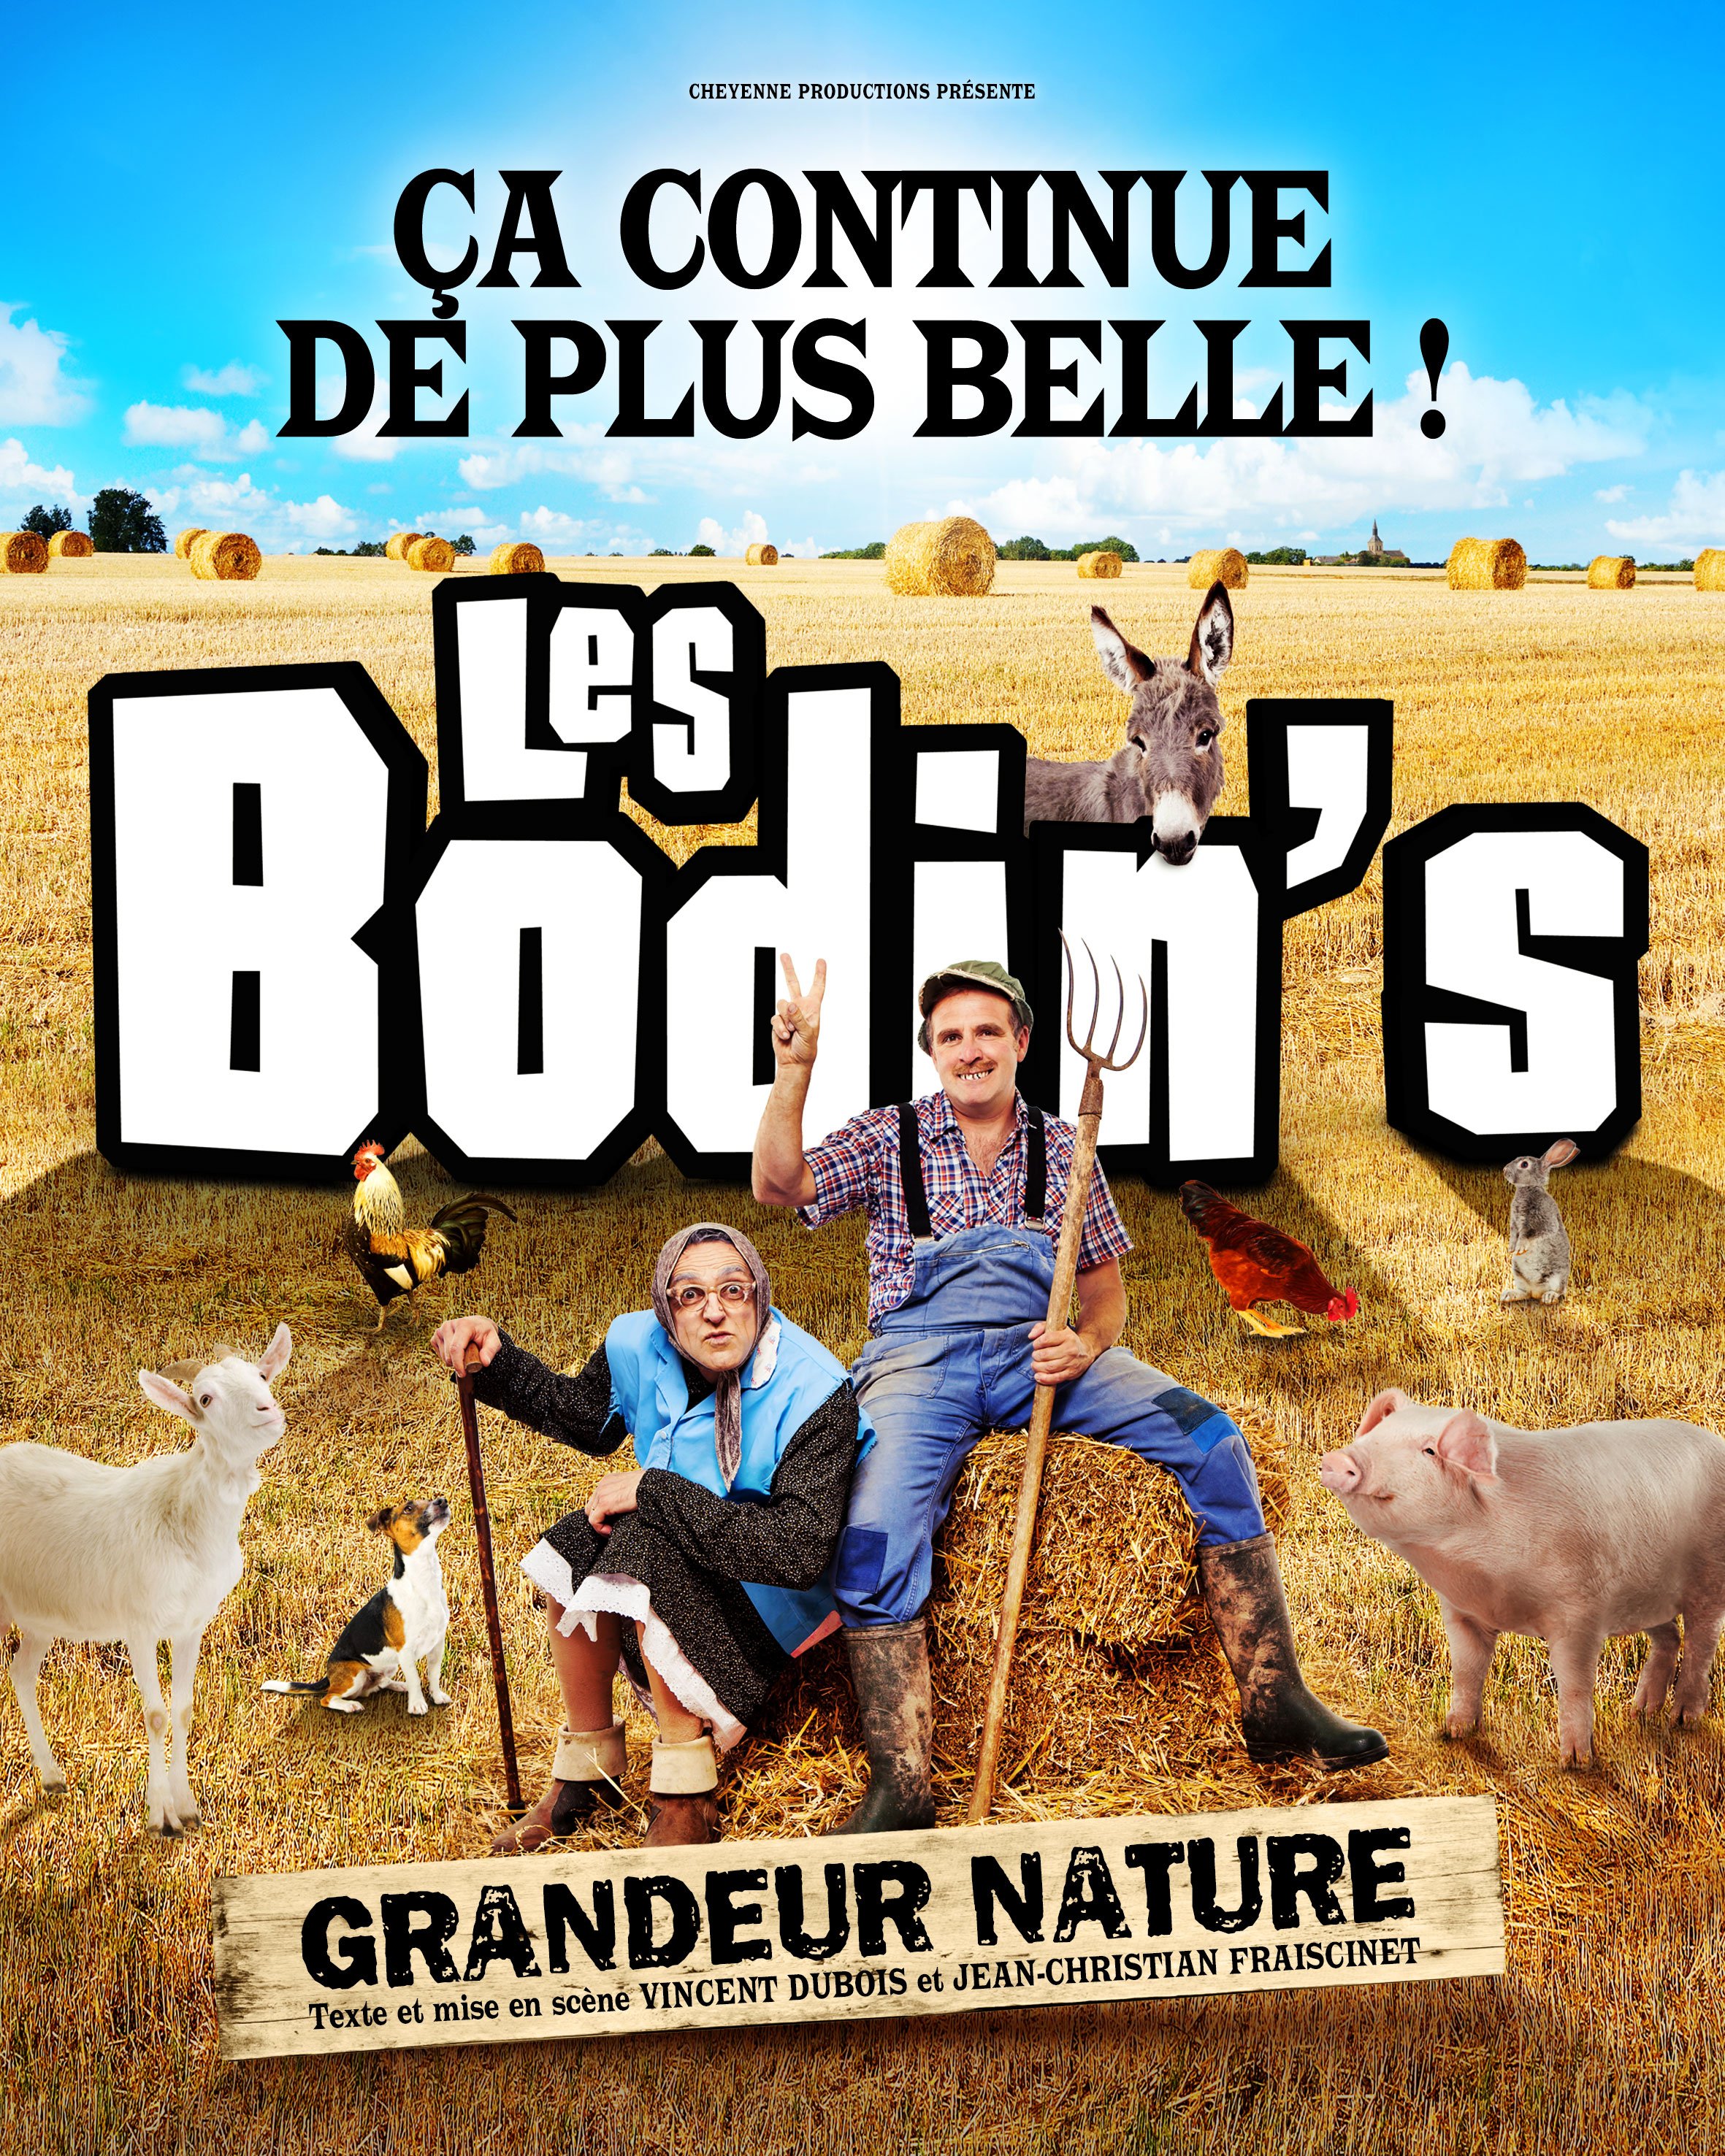 Les Bodin's Grandeur Nature 2017 Uptobox : bodin's, grandeur, nature, uptobox, BODIN'S, GRANDEUR, NATURE, Alternative, Grand, Ouest